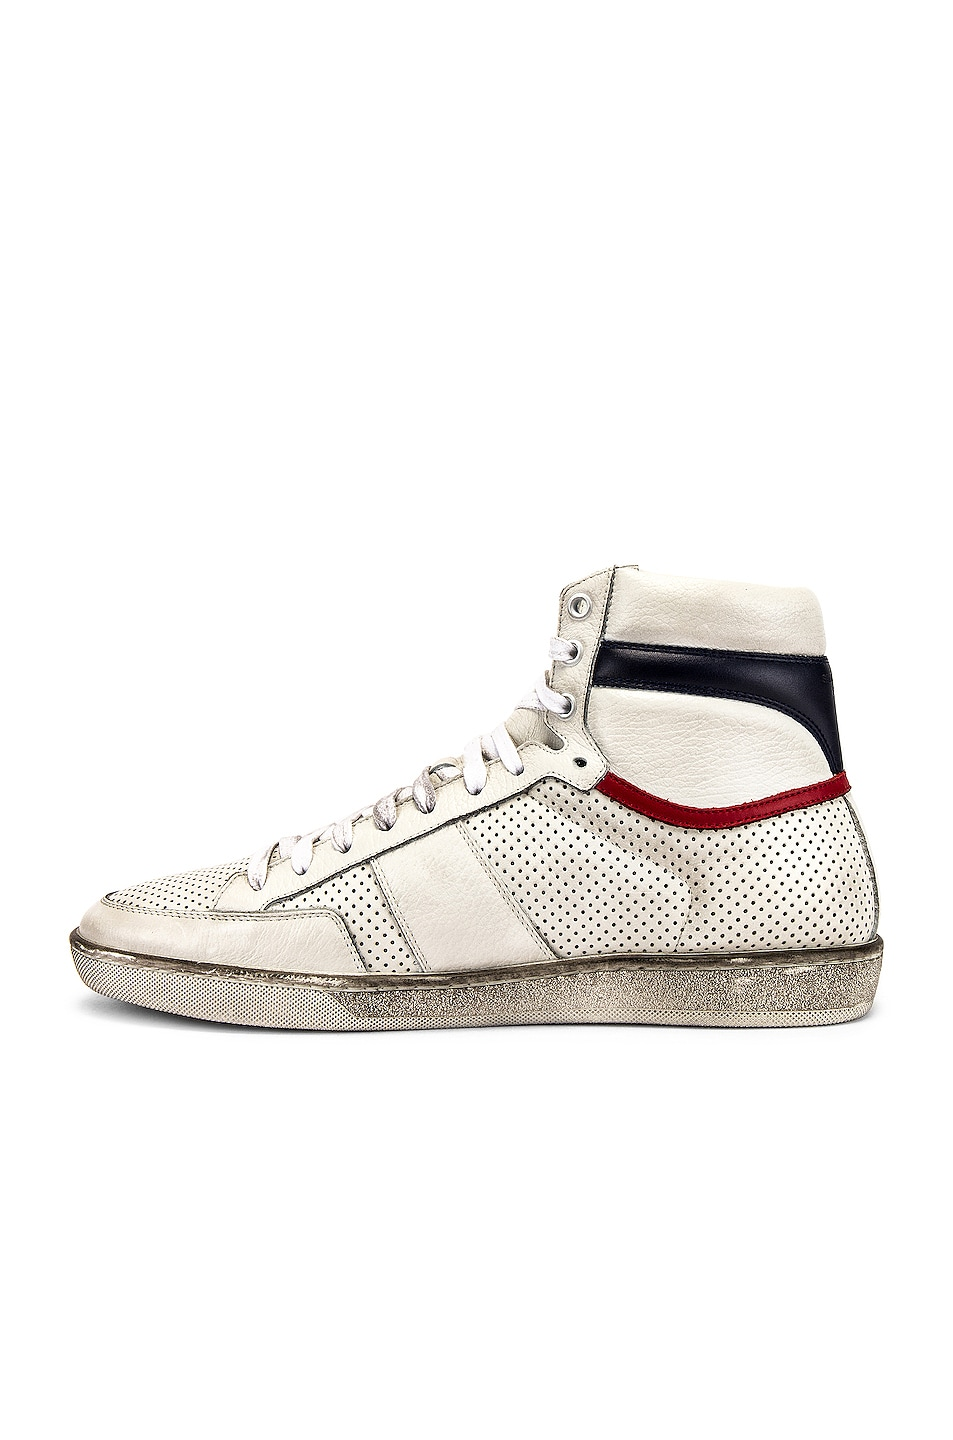 Image 5 of Saint Laurent Court Classic High Top Sneakers in White